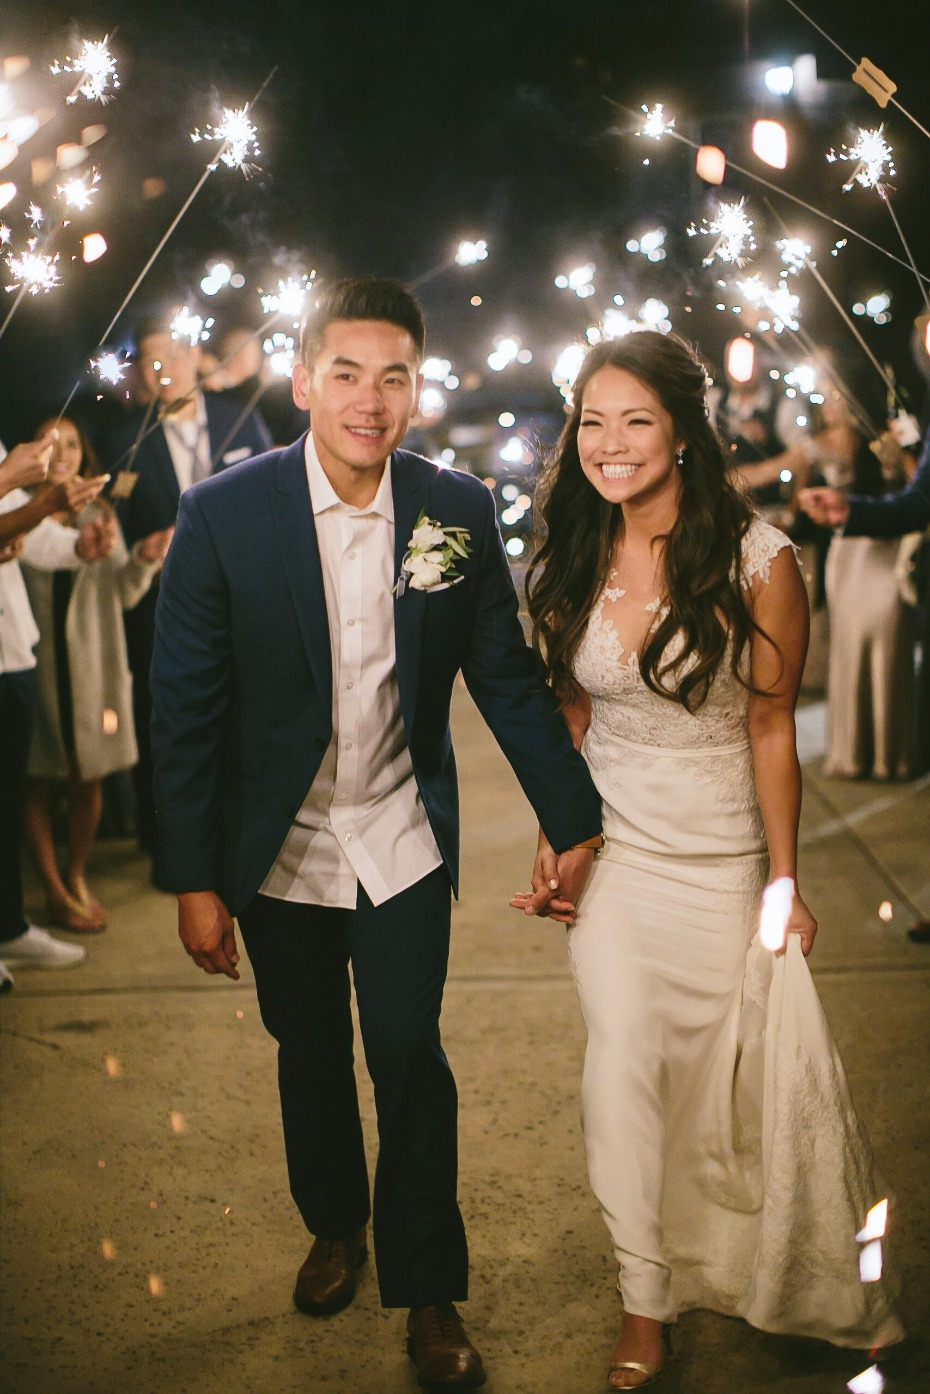 magical sparkler exit for the newlyweds